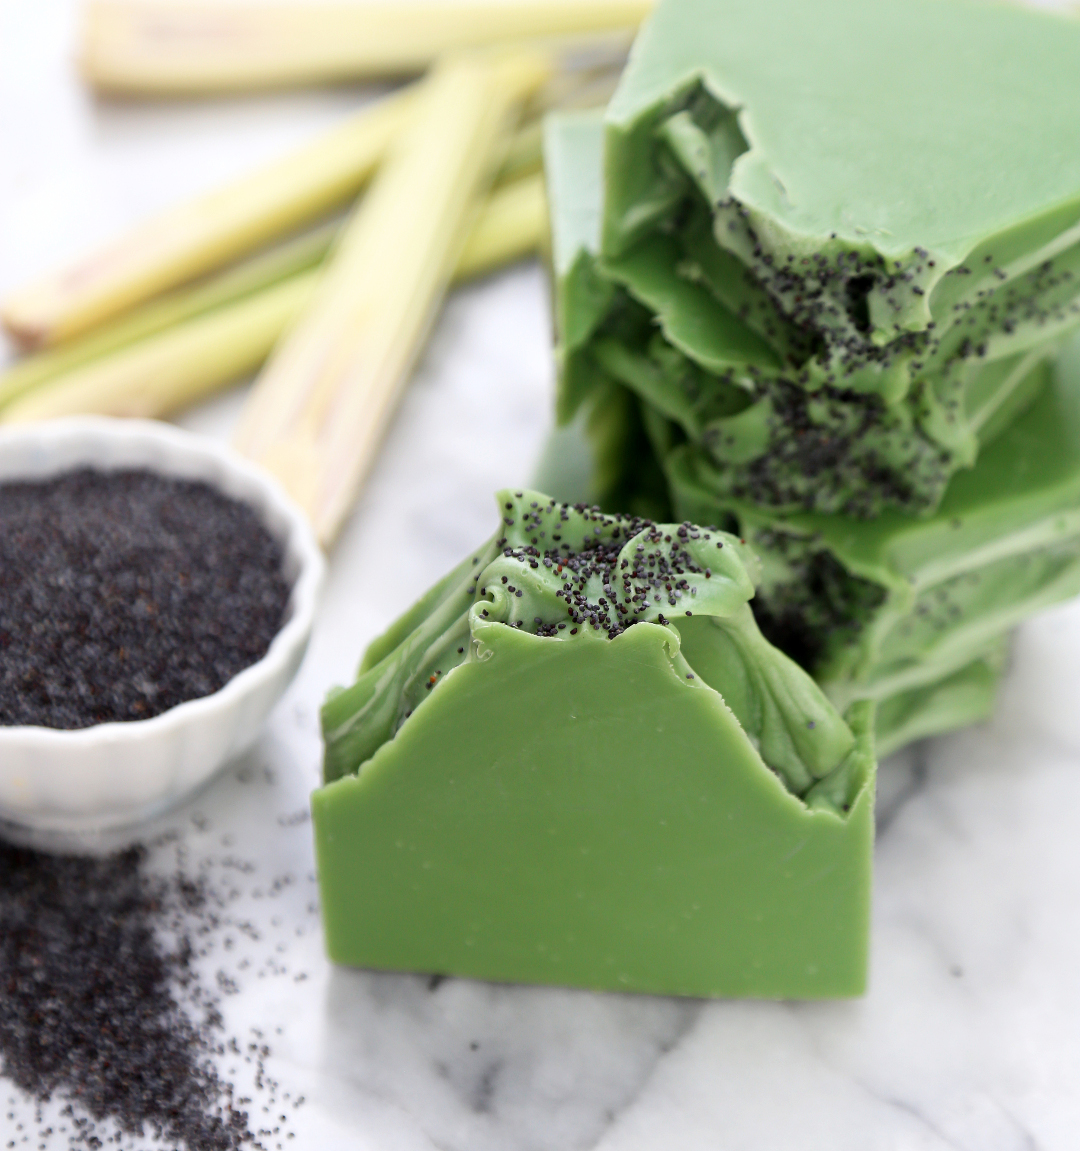 Coloring Soap With Spinach Powder - a-k-b.info